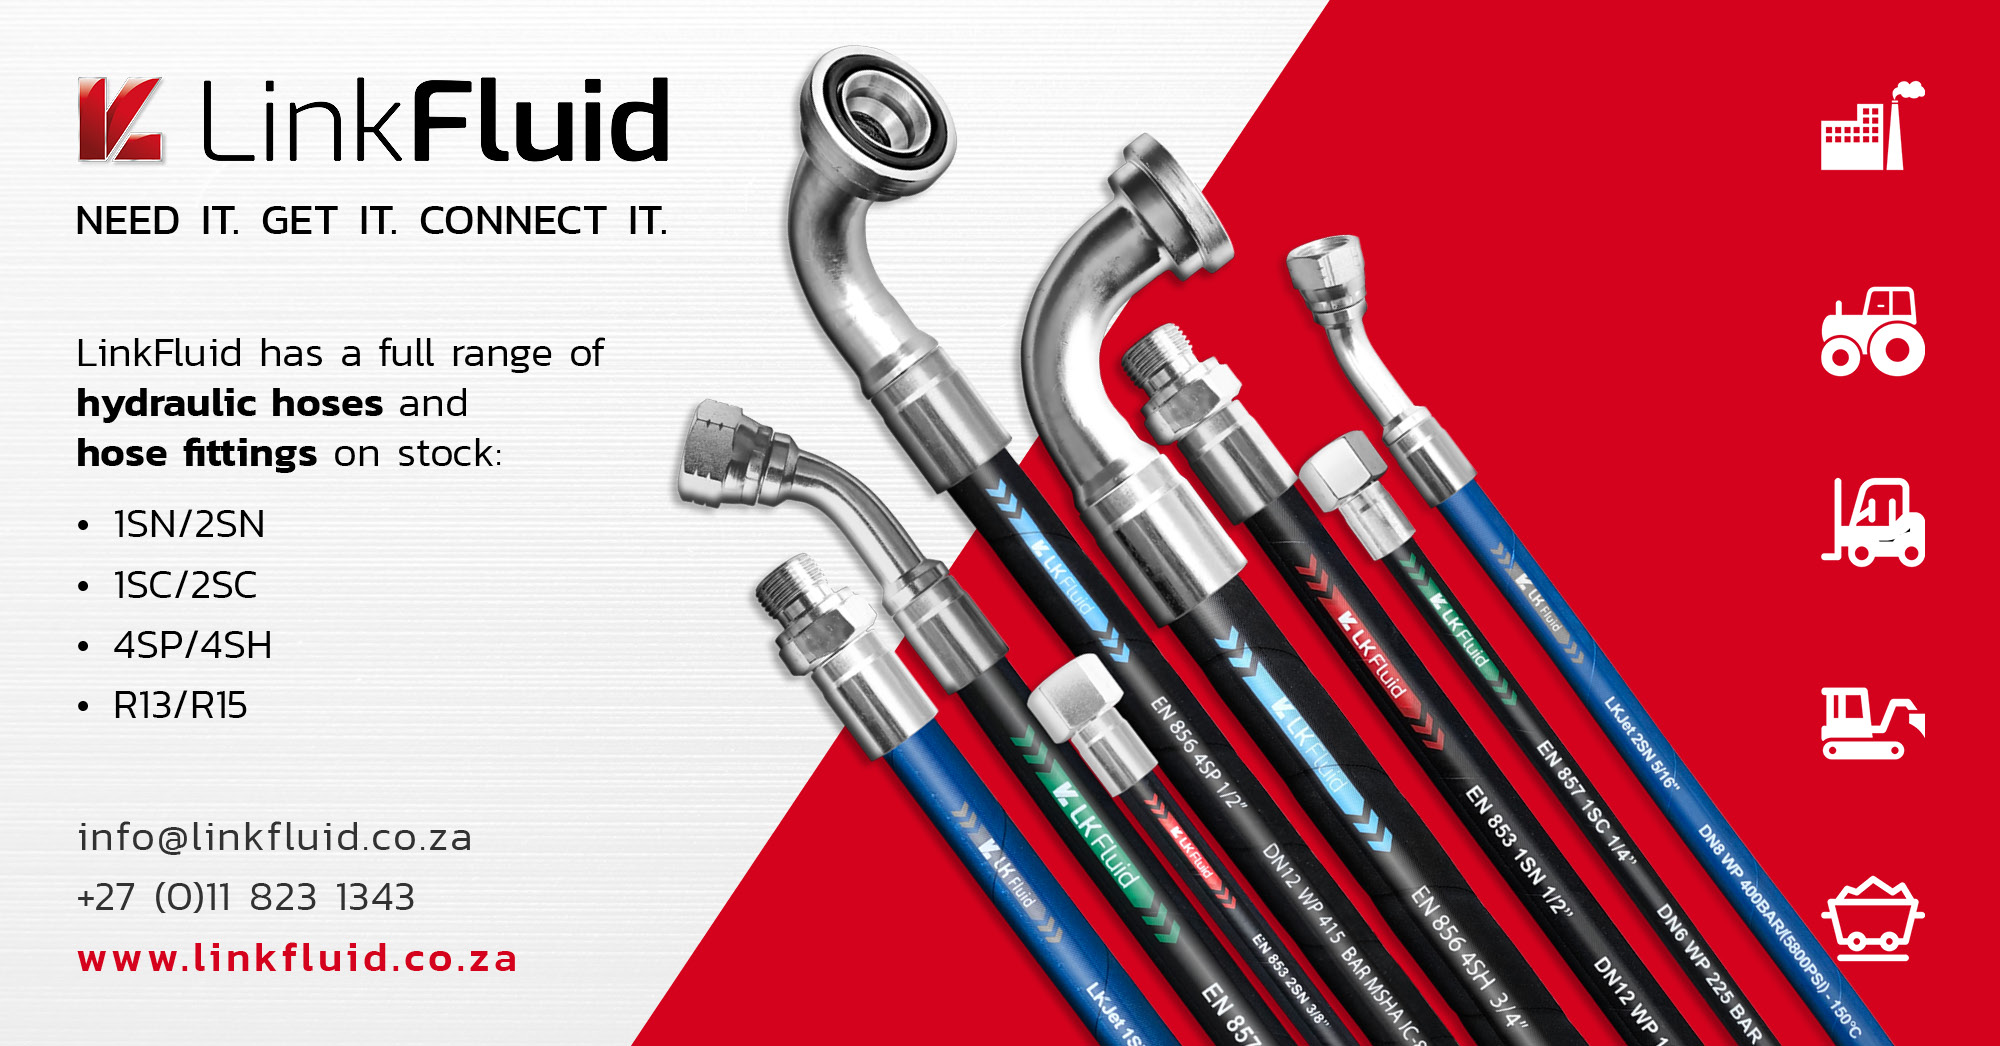 LinkFluid has a full range of hydraulic hoses and  hose fittings on stock